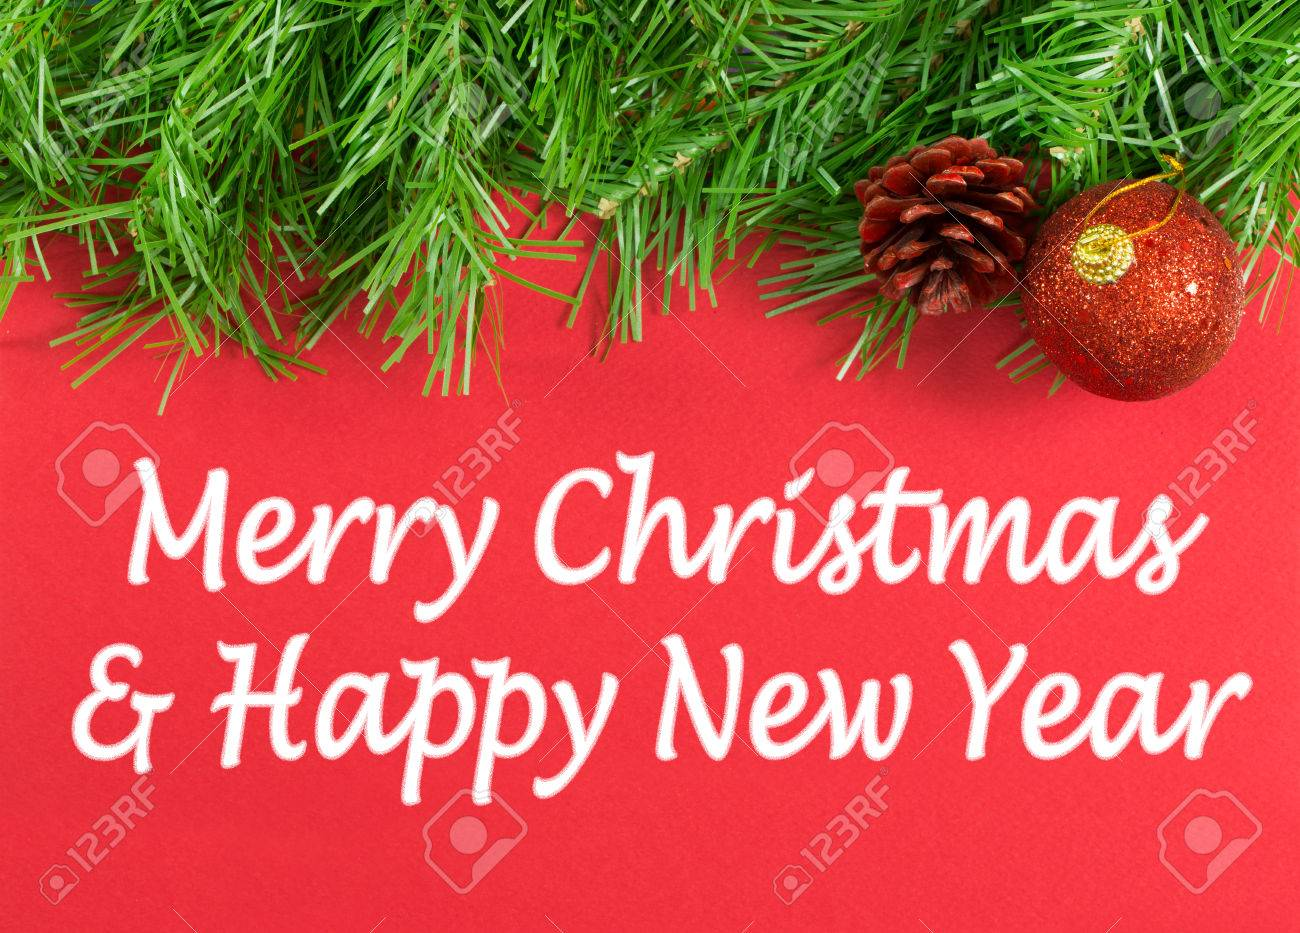 Merry Christmas And Happy New Year Greeting Message Stock Photo